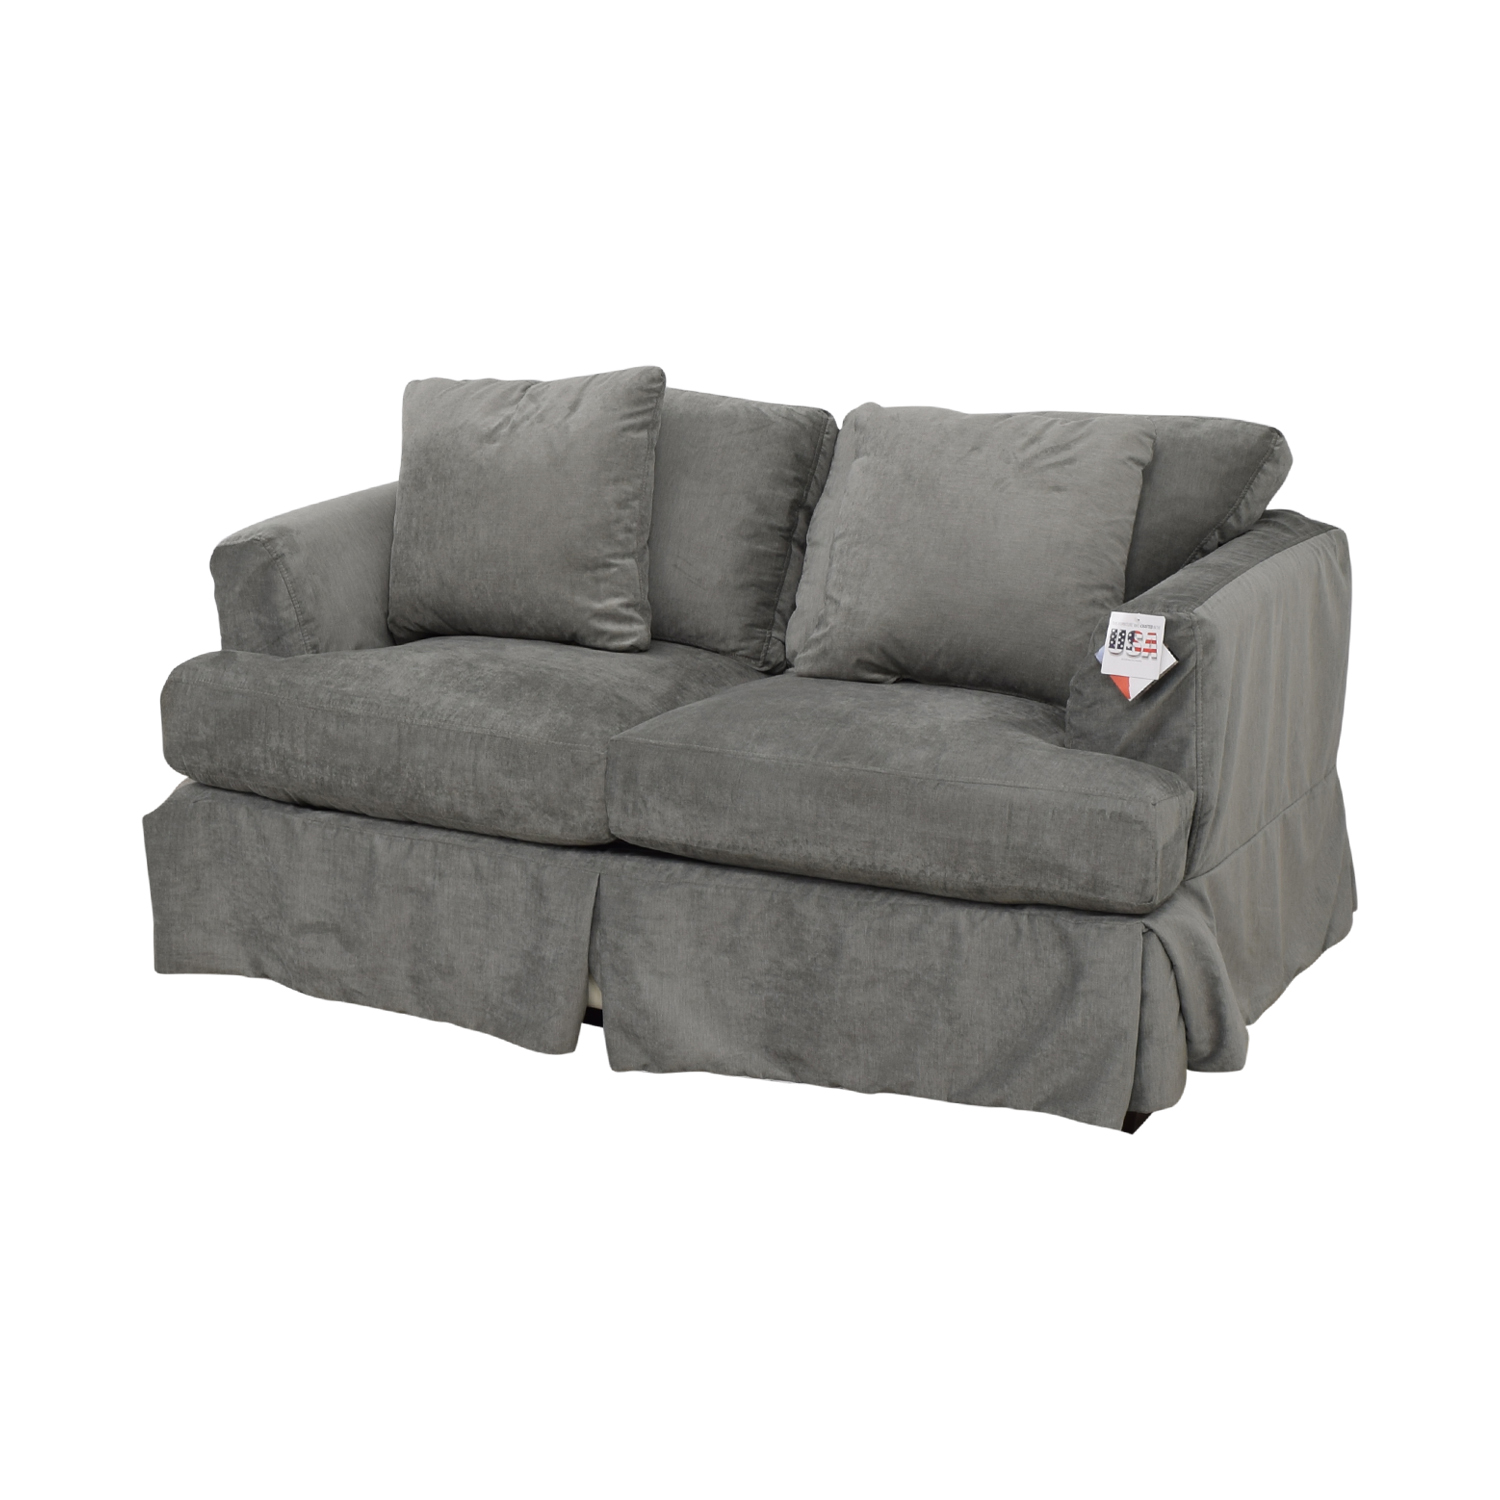 Wayfair Wayfair Grey Upholstered Two-Cushion Loveseat used